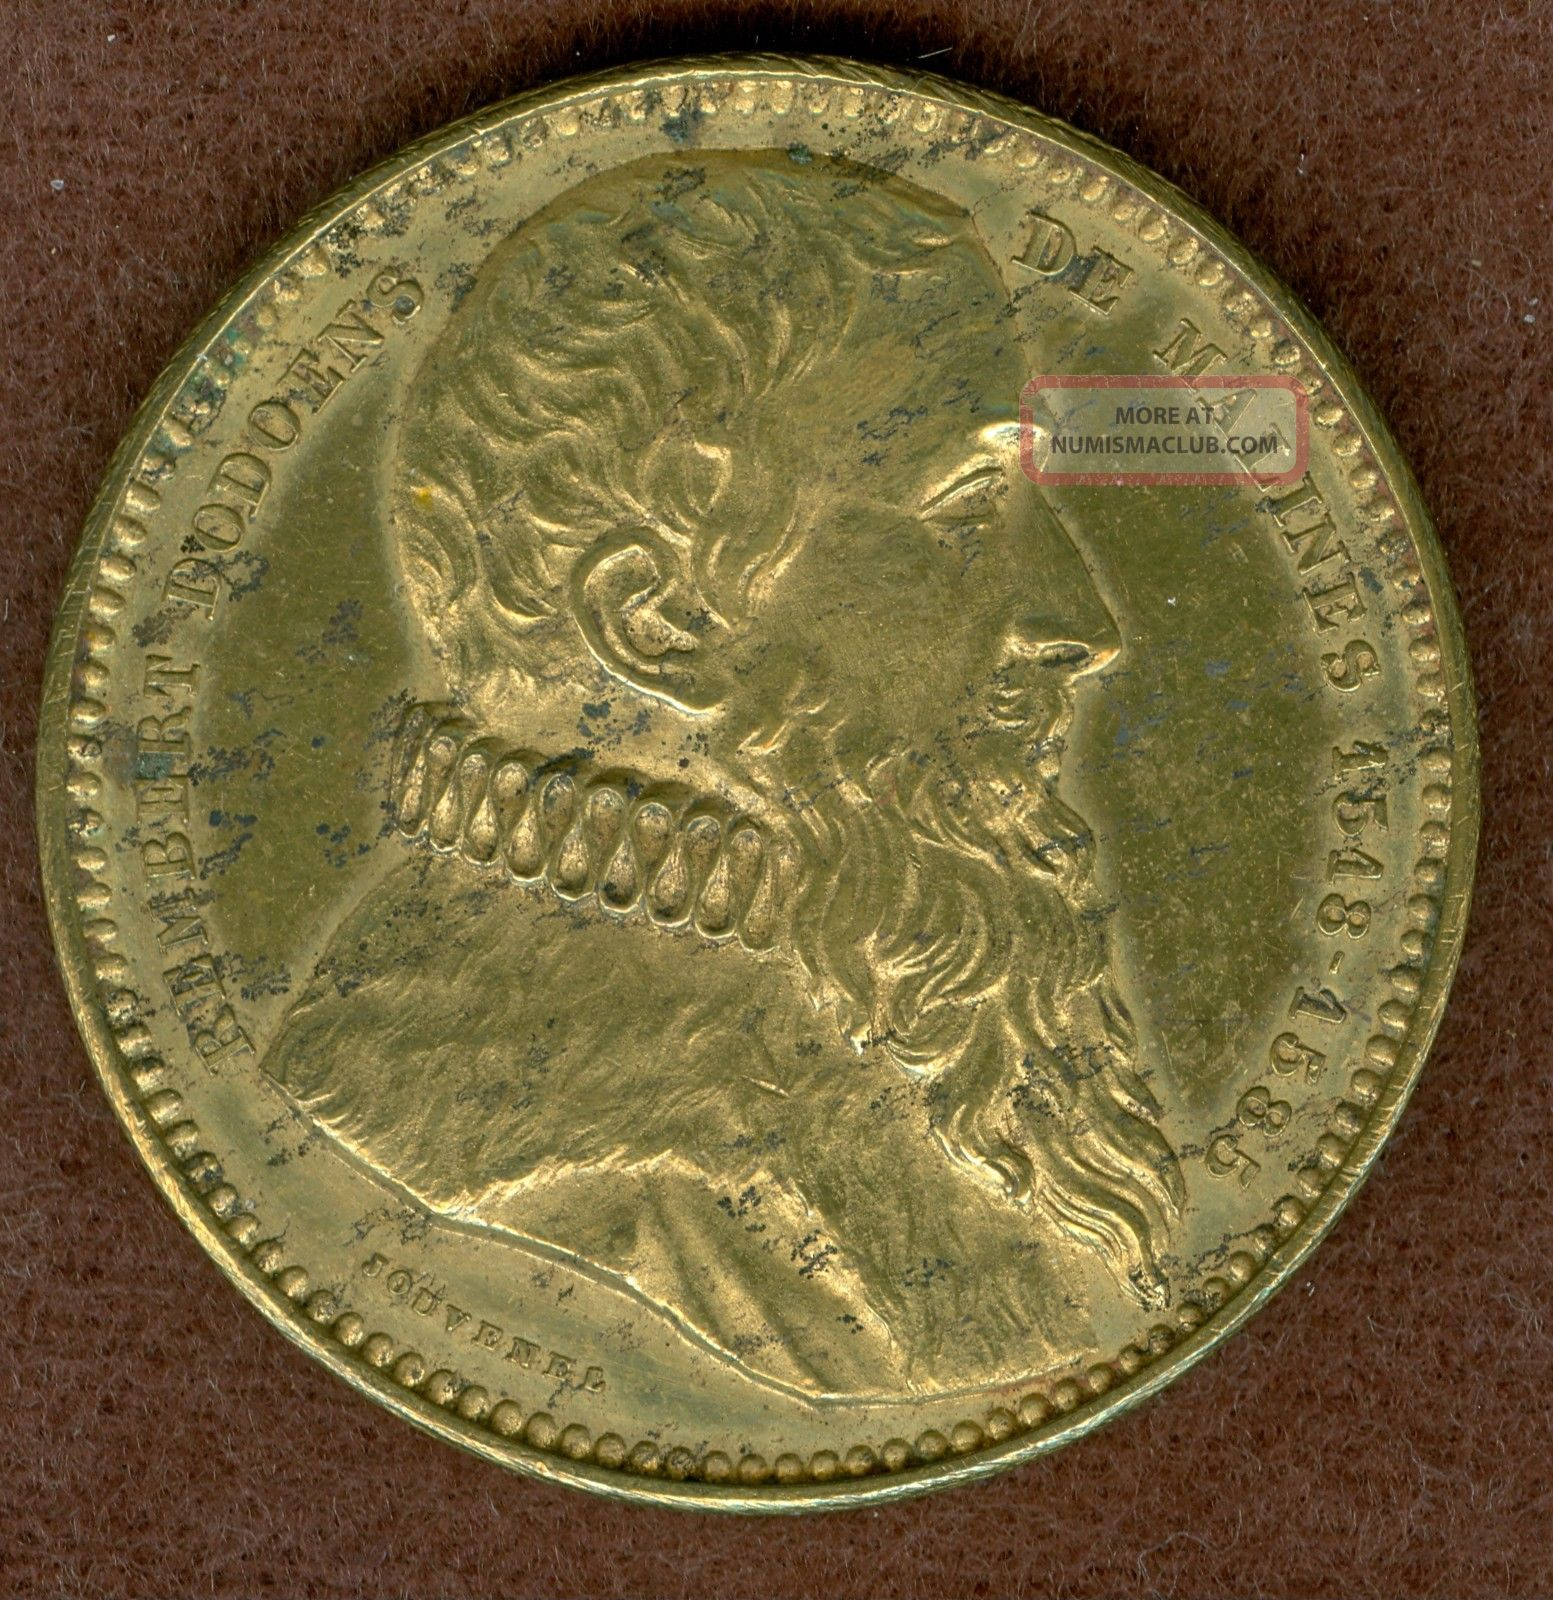 1846 Rembert Dodoens Medal By Adolphe Christian Jouvenel Exonumia photo